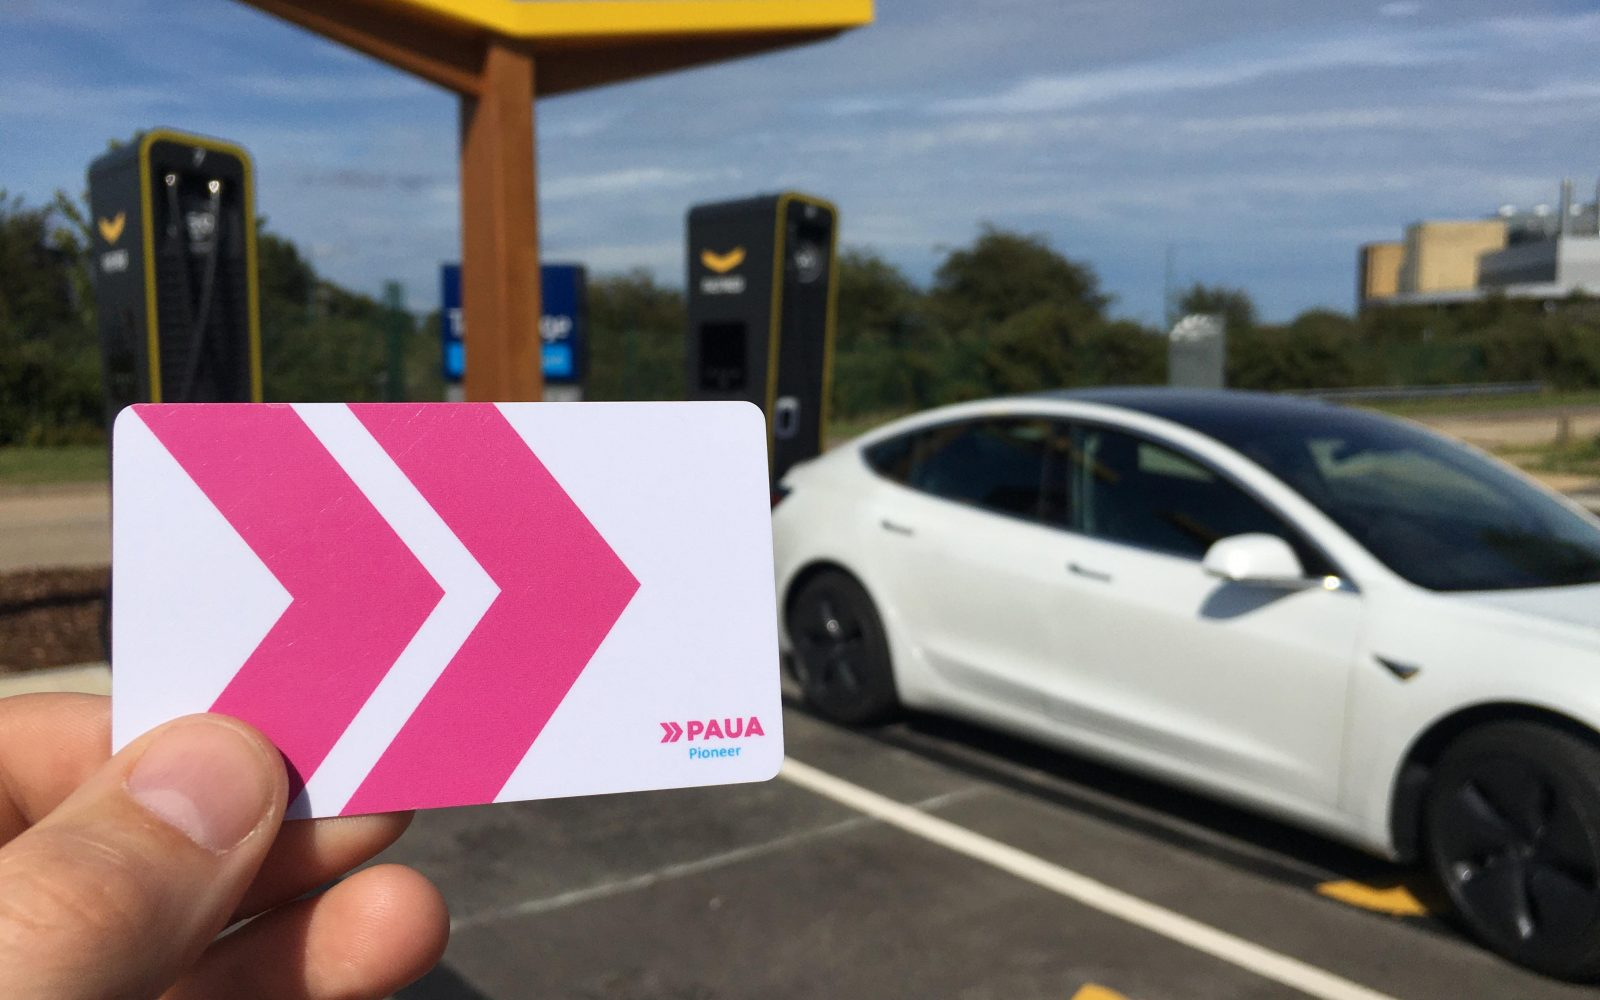 Alongside Fastned, Paua also has Osprey and Mer chargepoints on offer through its electric fuel card solution. Image: Paua